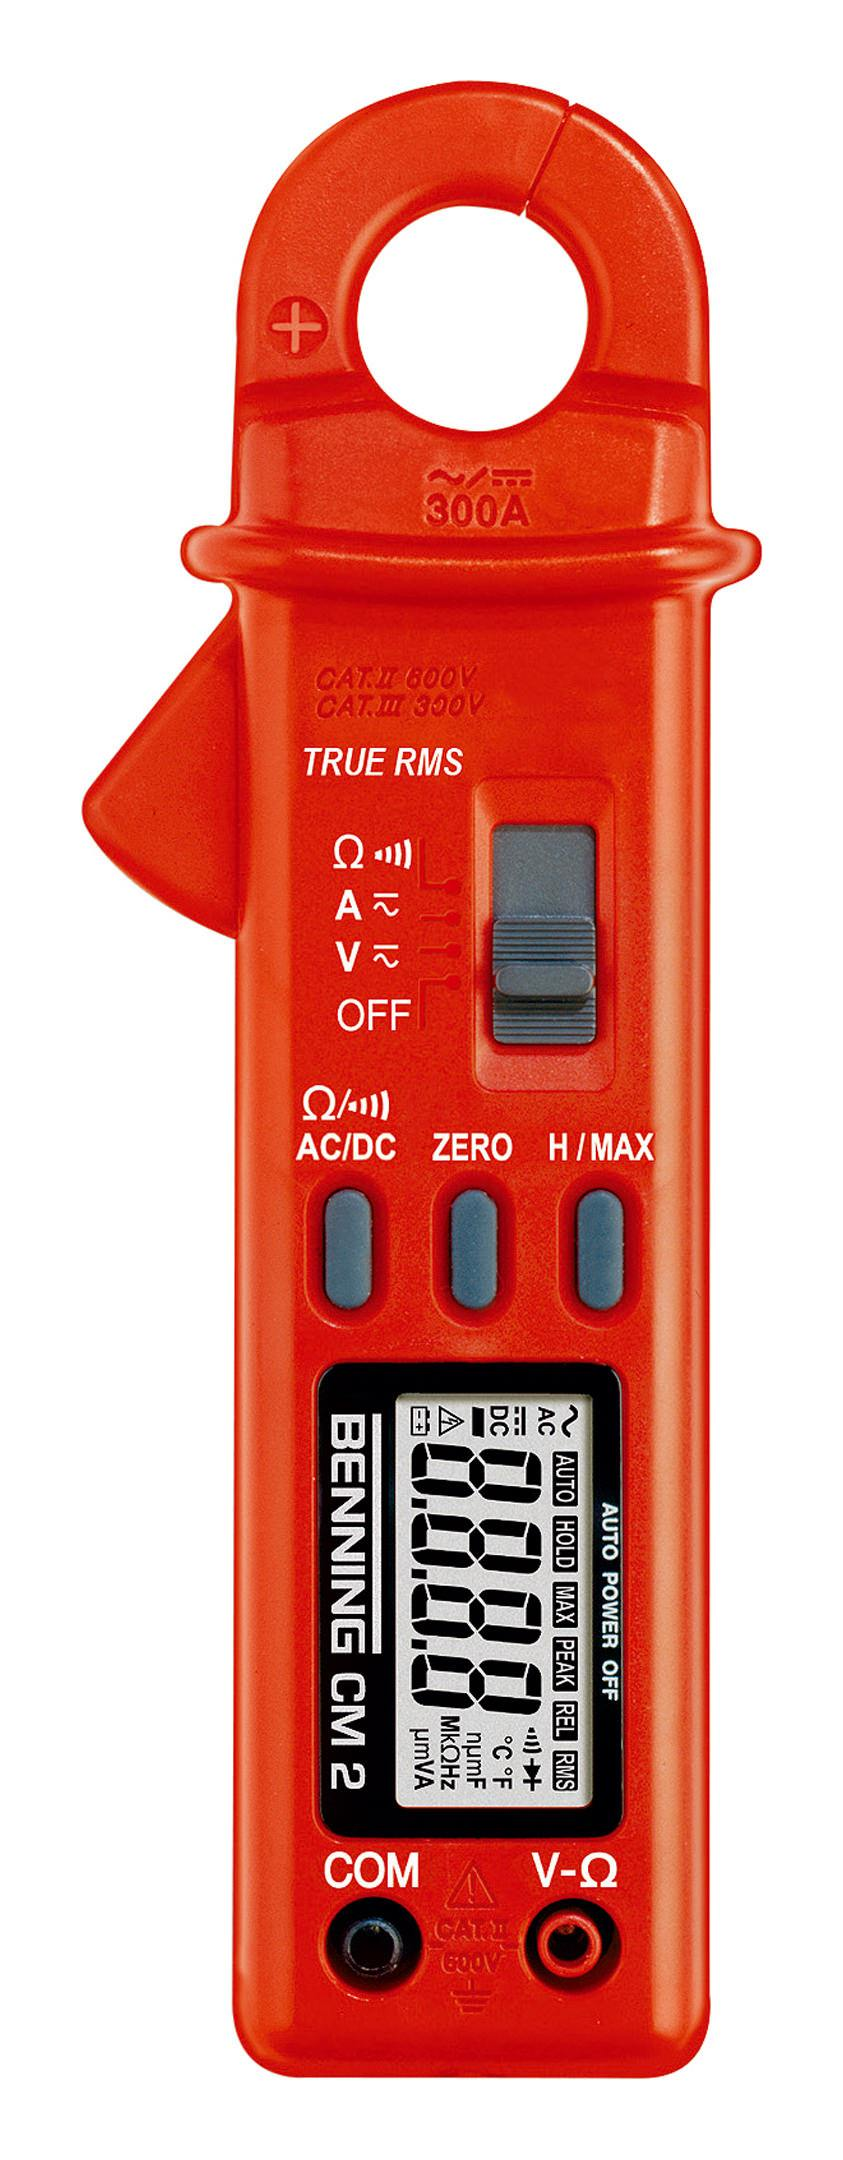 Benning Digital-Stromzähler-Multimeter CM 2 - 044035